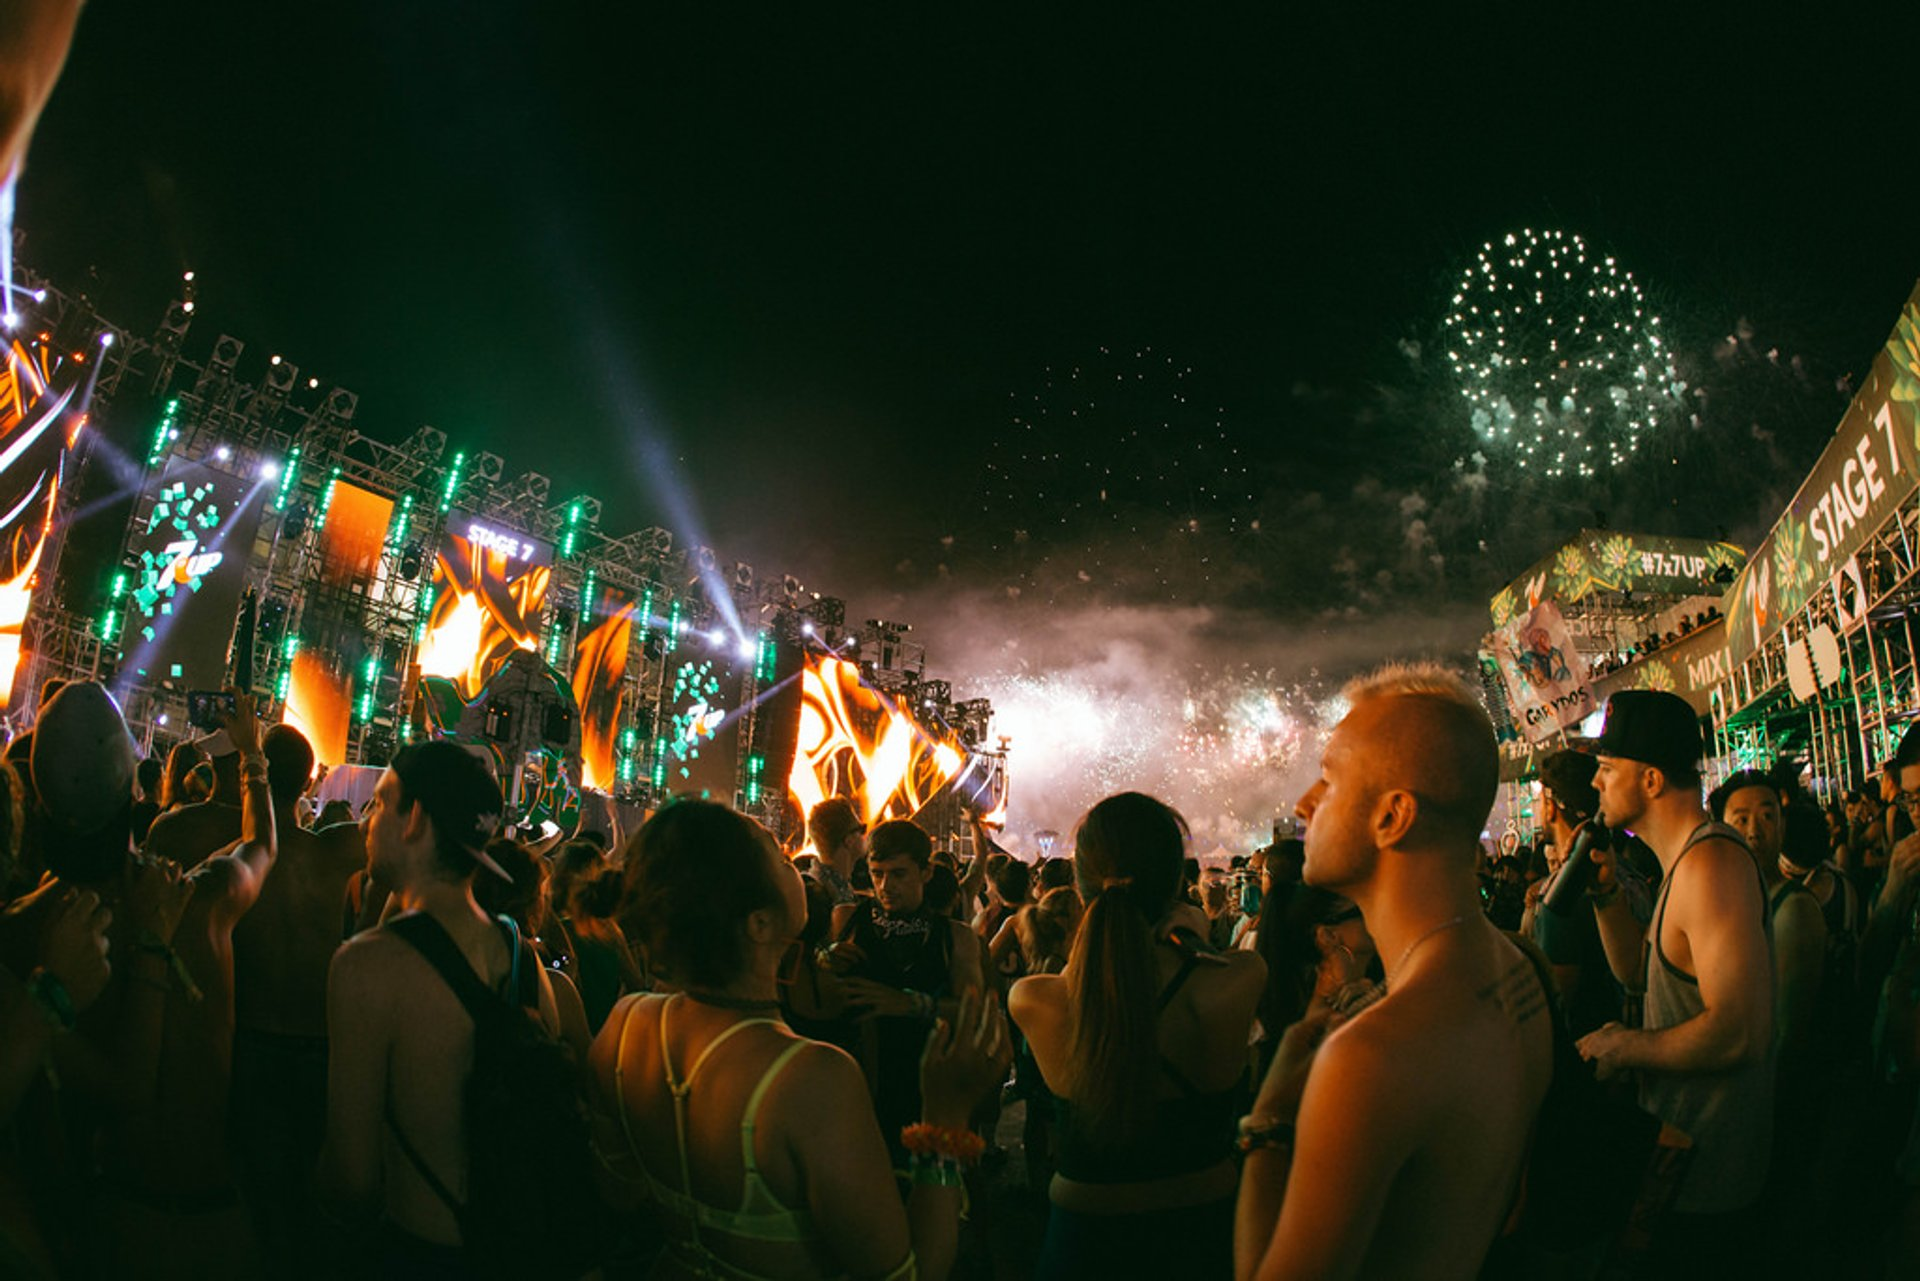 Best time to see EDC Las Vegas (Electric Daisy Carnival) in Las Vegas 2019